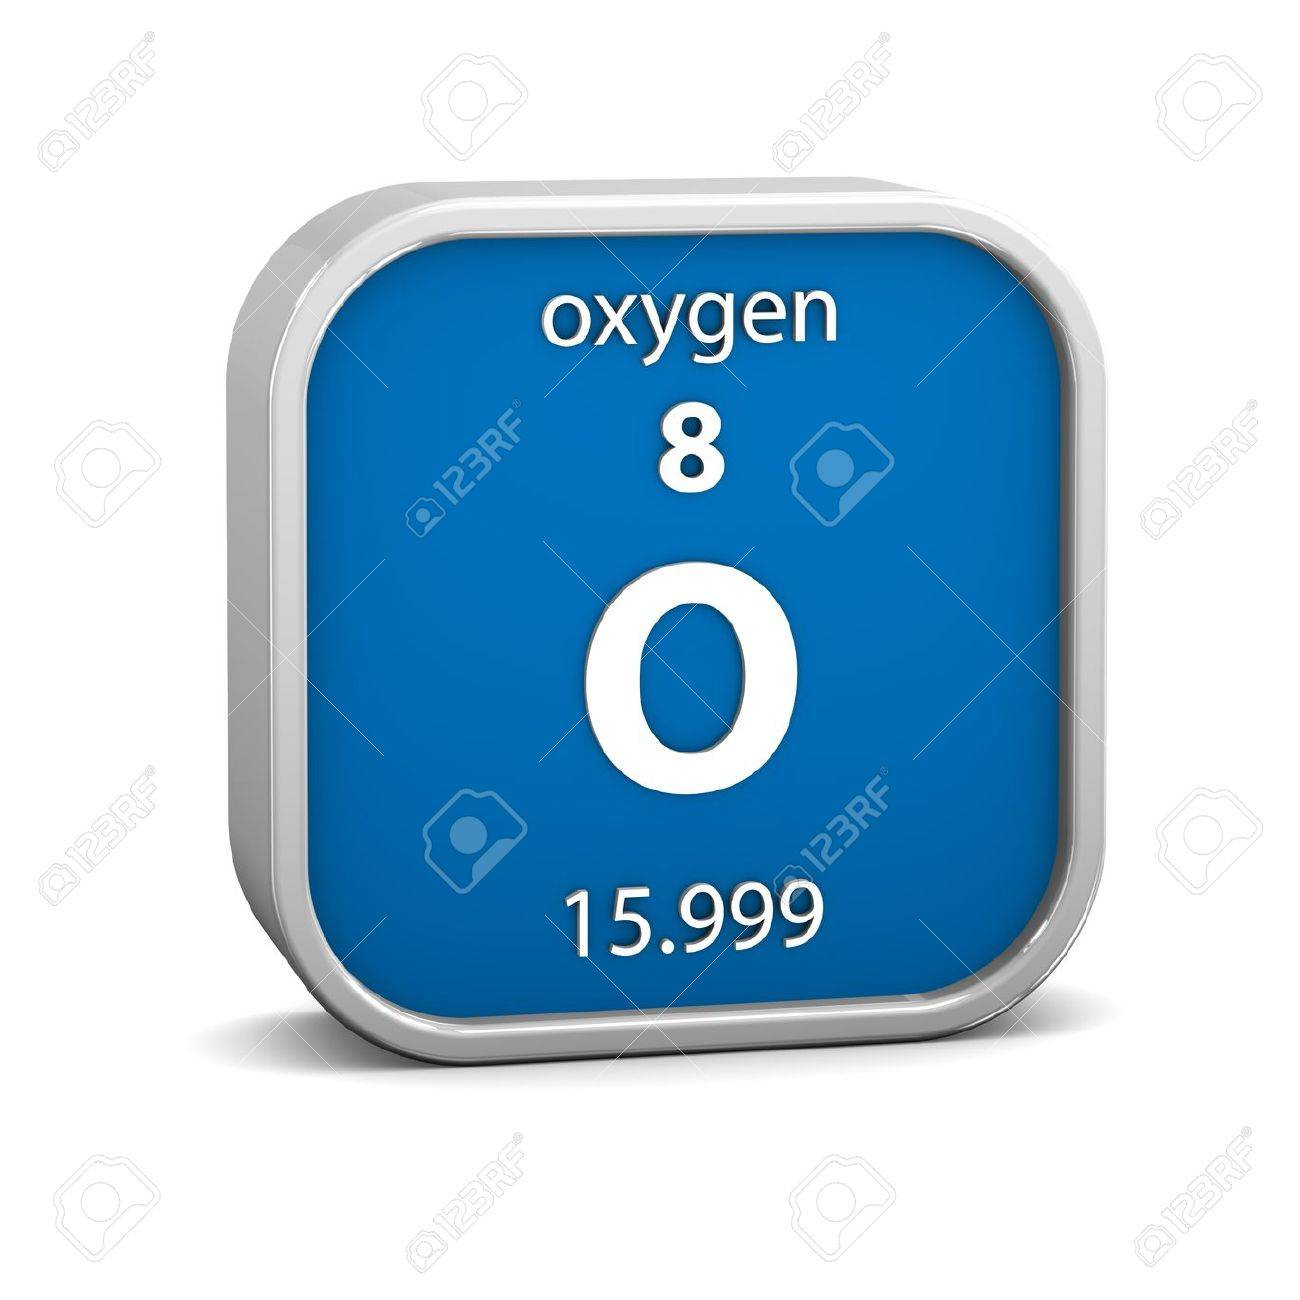 Oxygen material on the periodic table part of a series stock photo oxygen material on the periodic table part of a series stock photo 19127333 urtaz Image collections